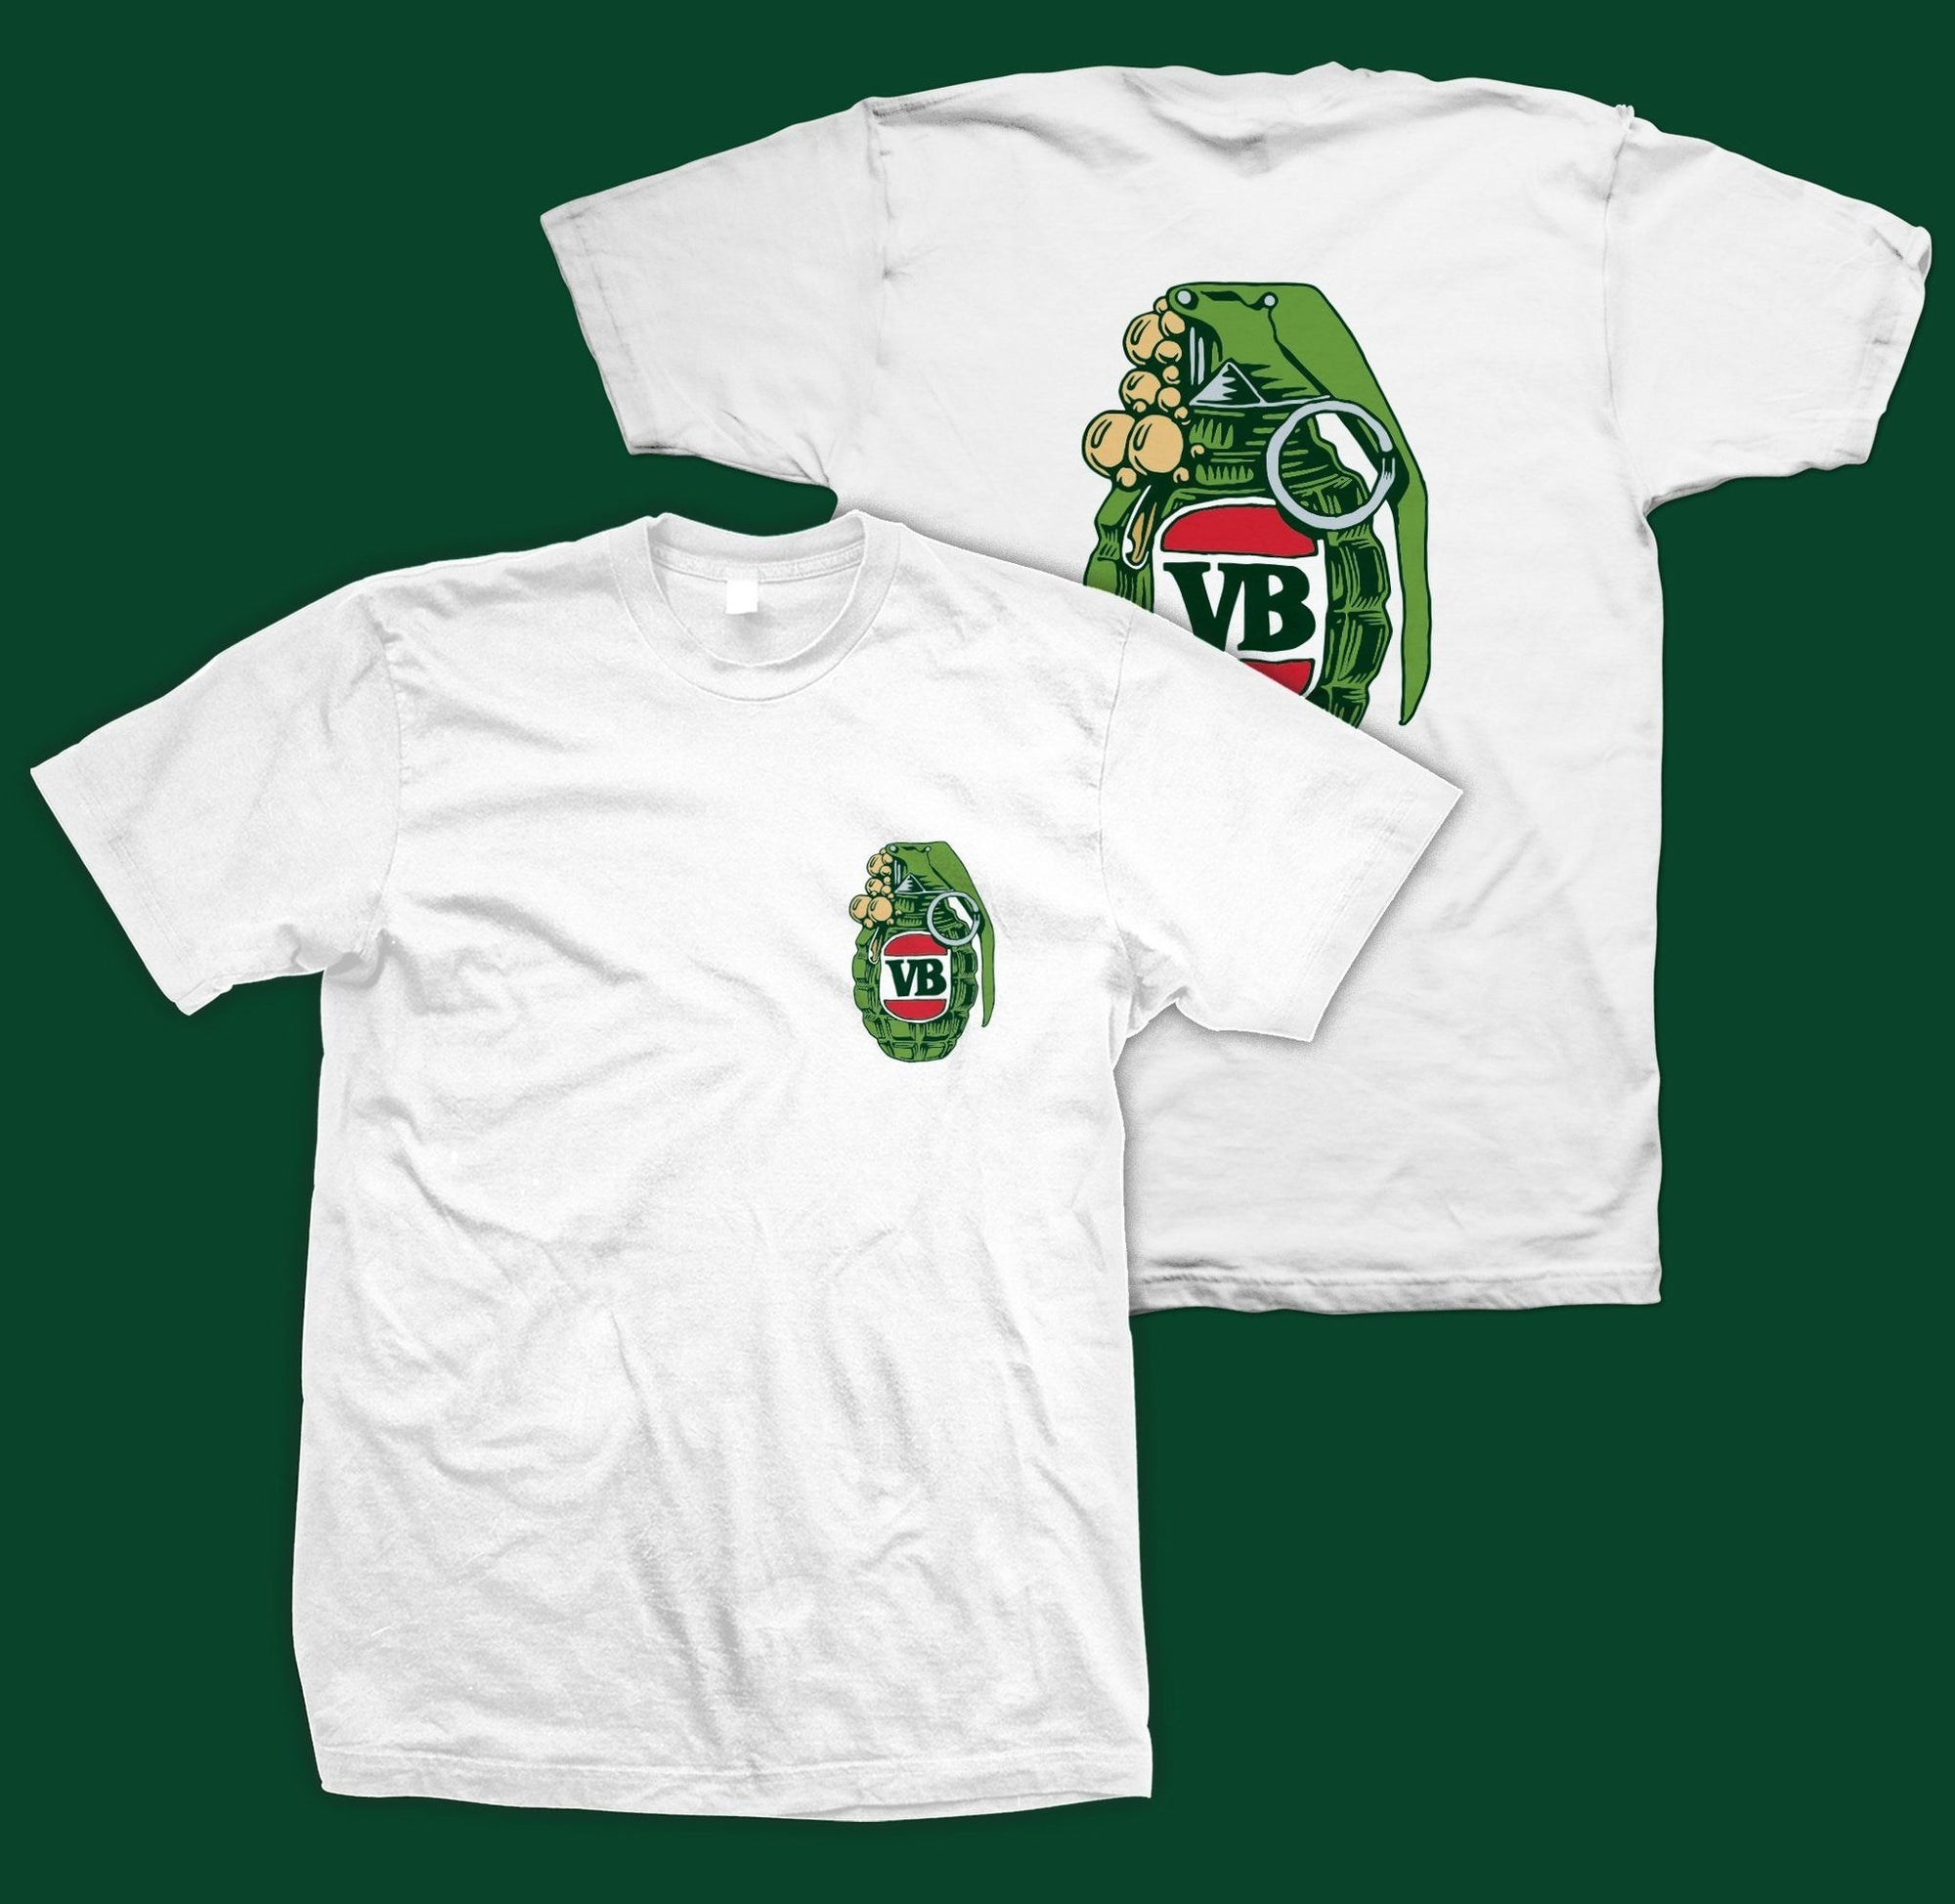 Victor Bravos Green Grenade T-Shirt - White SP-ApparelTees-Mens Victor Bravo's